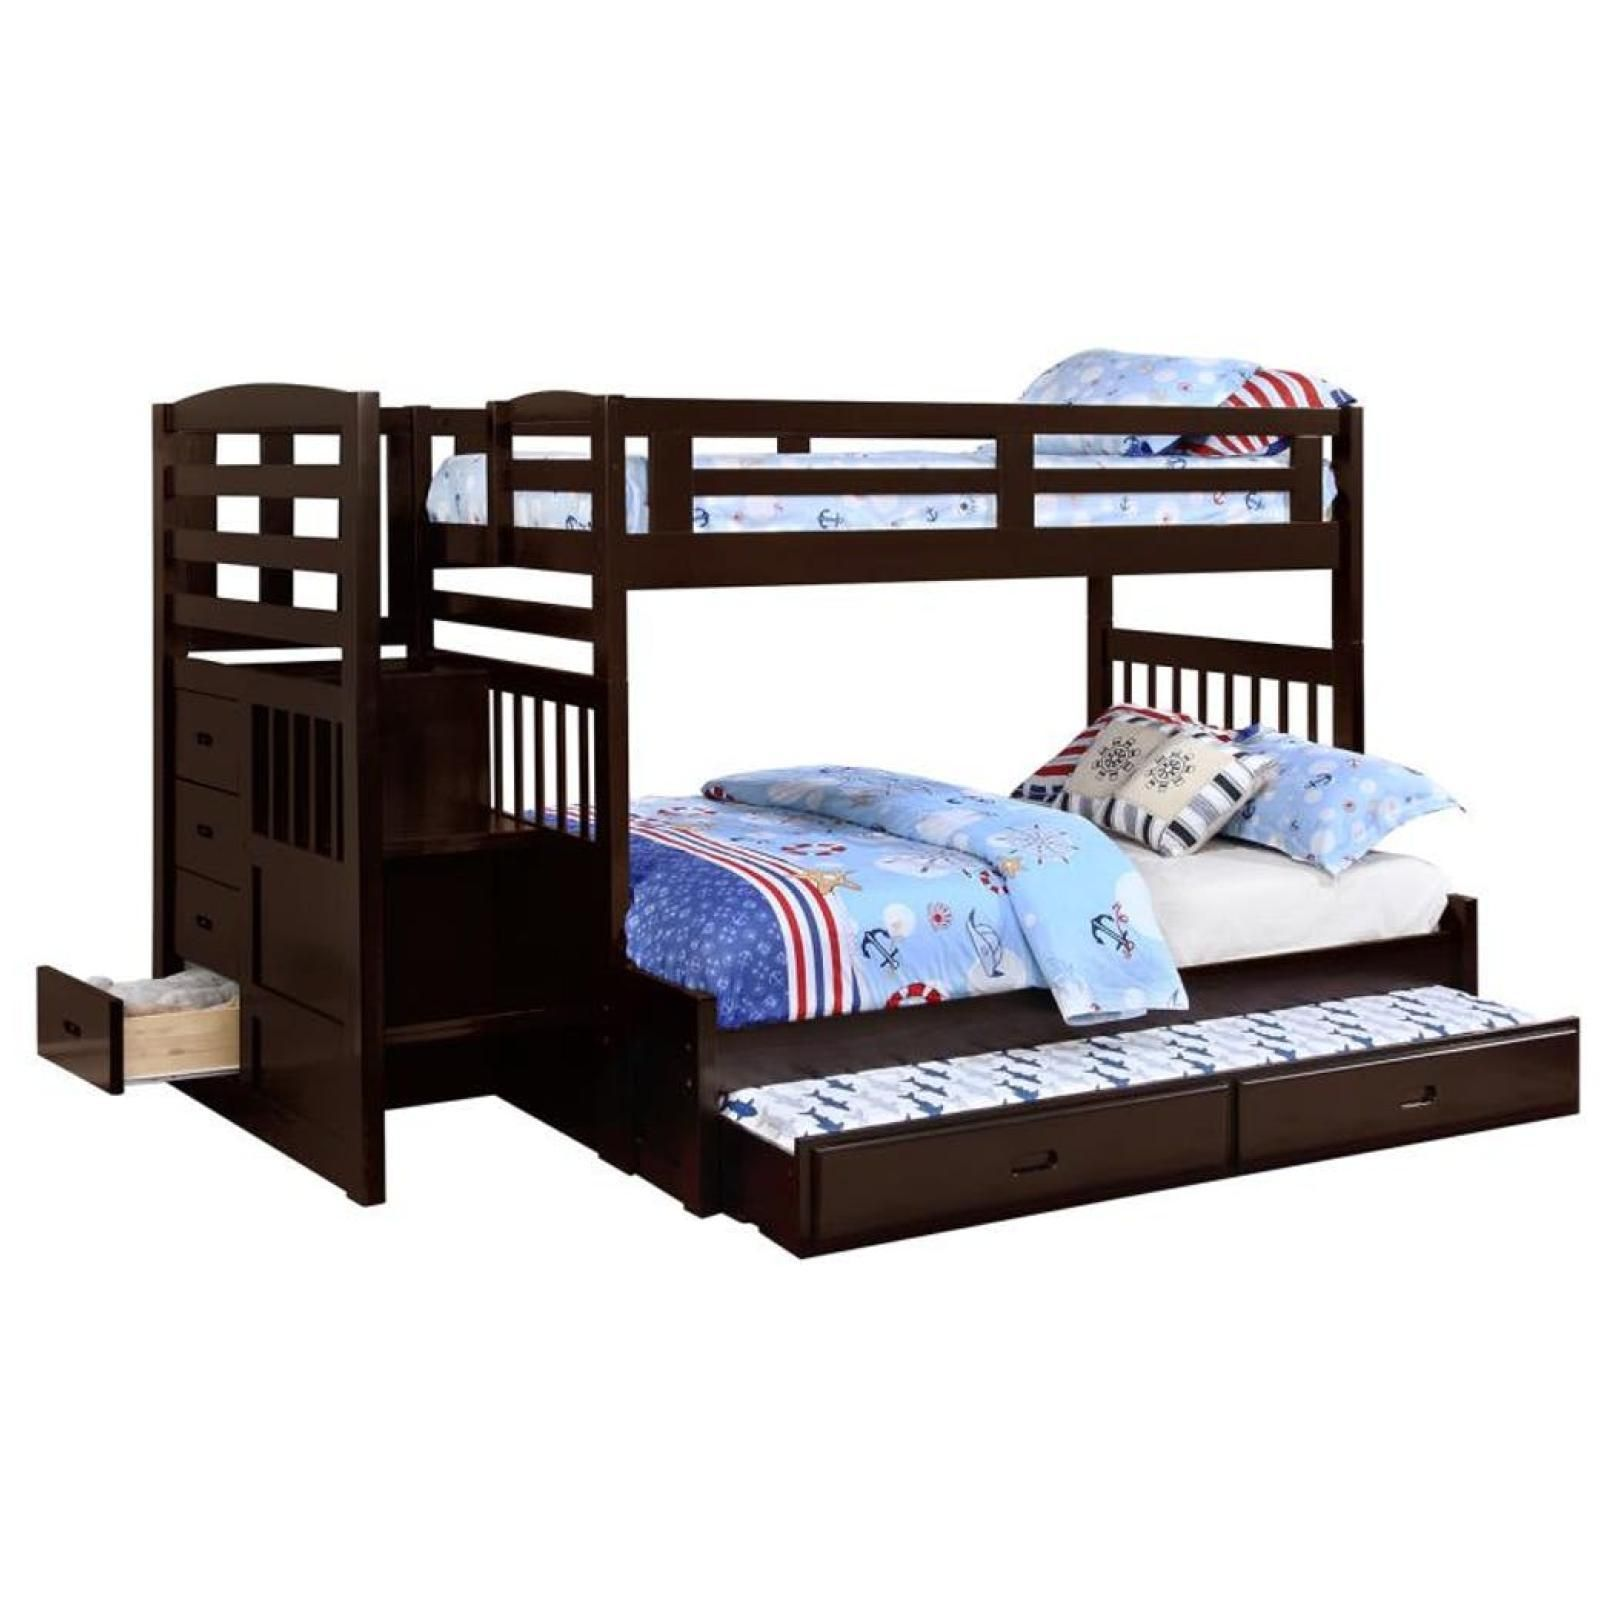 Dublin Twin/Full Bunk Bed with Staircase & Trundle Bunk